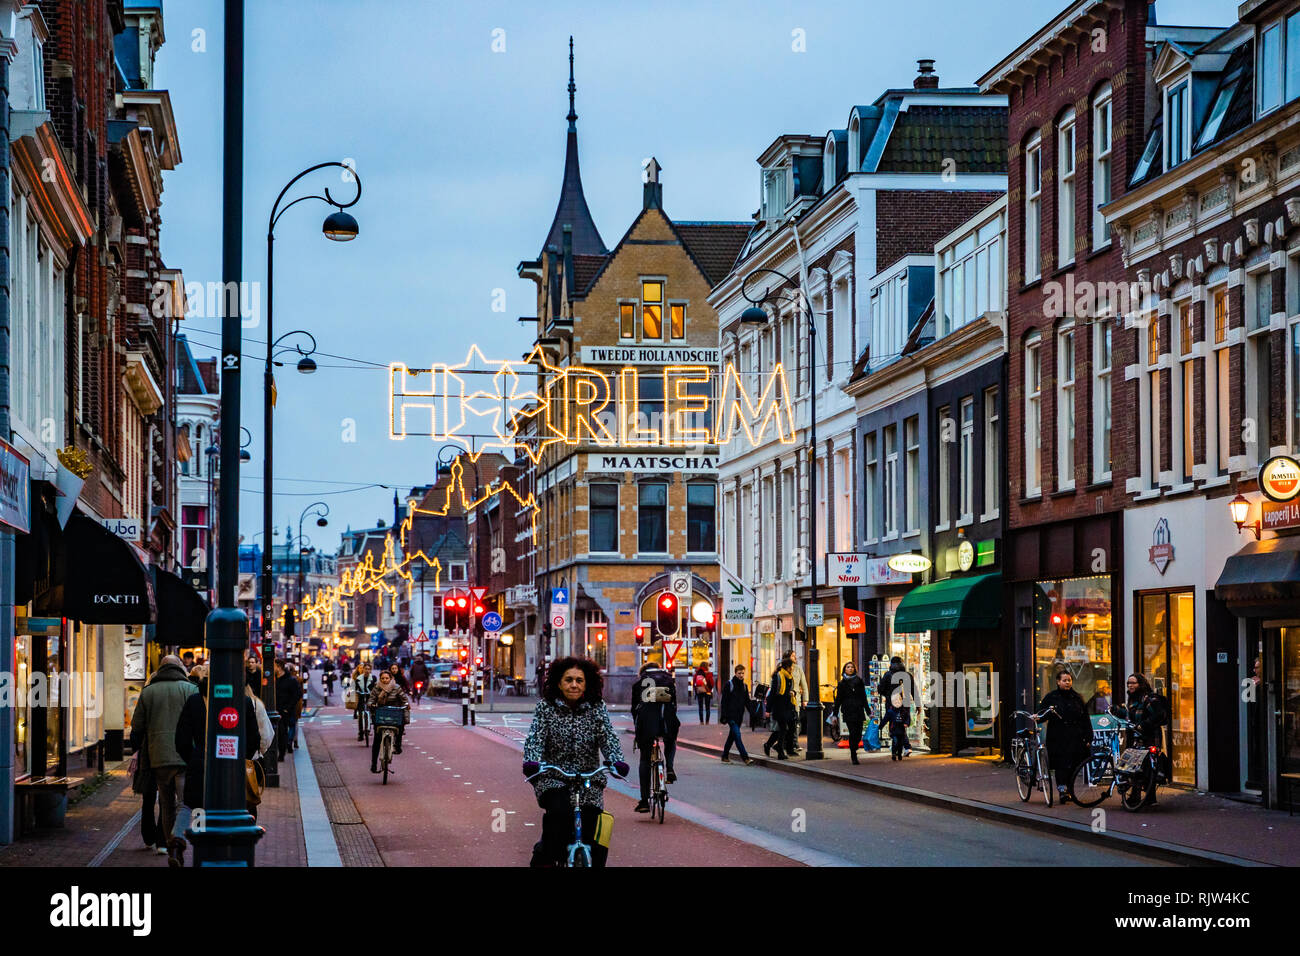 Haarlem /Netherlands - DEC 28, 2018:One of the street in Haarlem in Netherlands at evening after christmas. - Stock Image